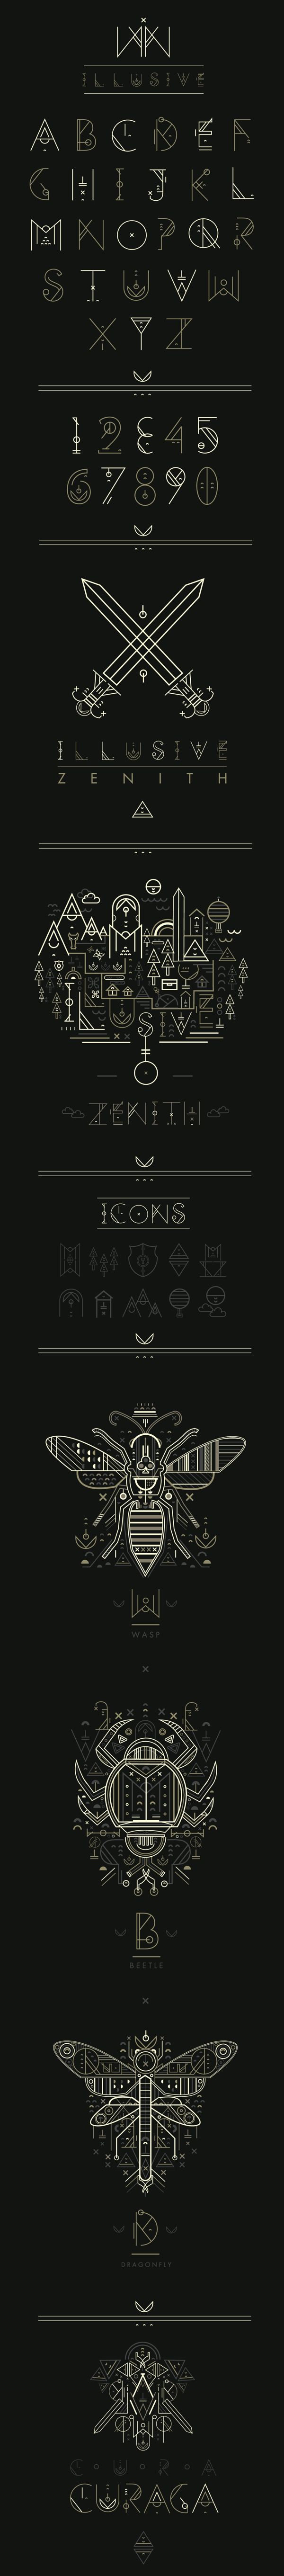 Illusive by Petros Afshar, via Behance